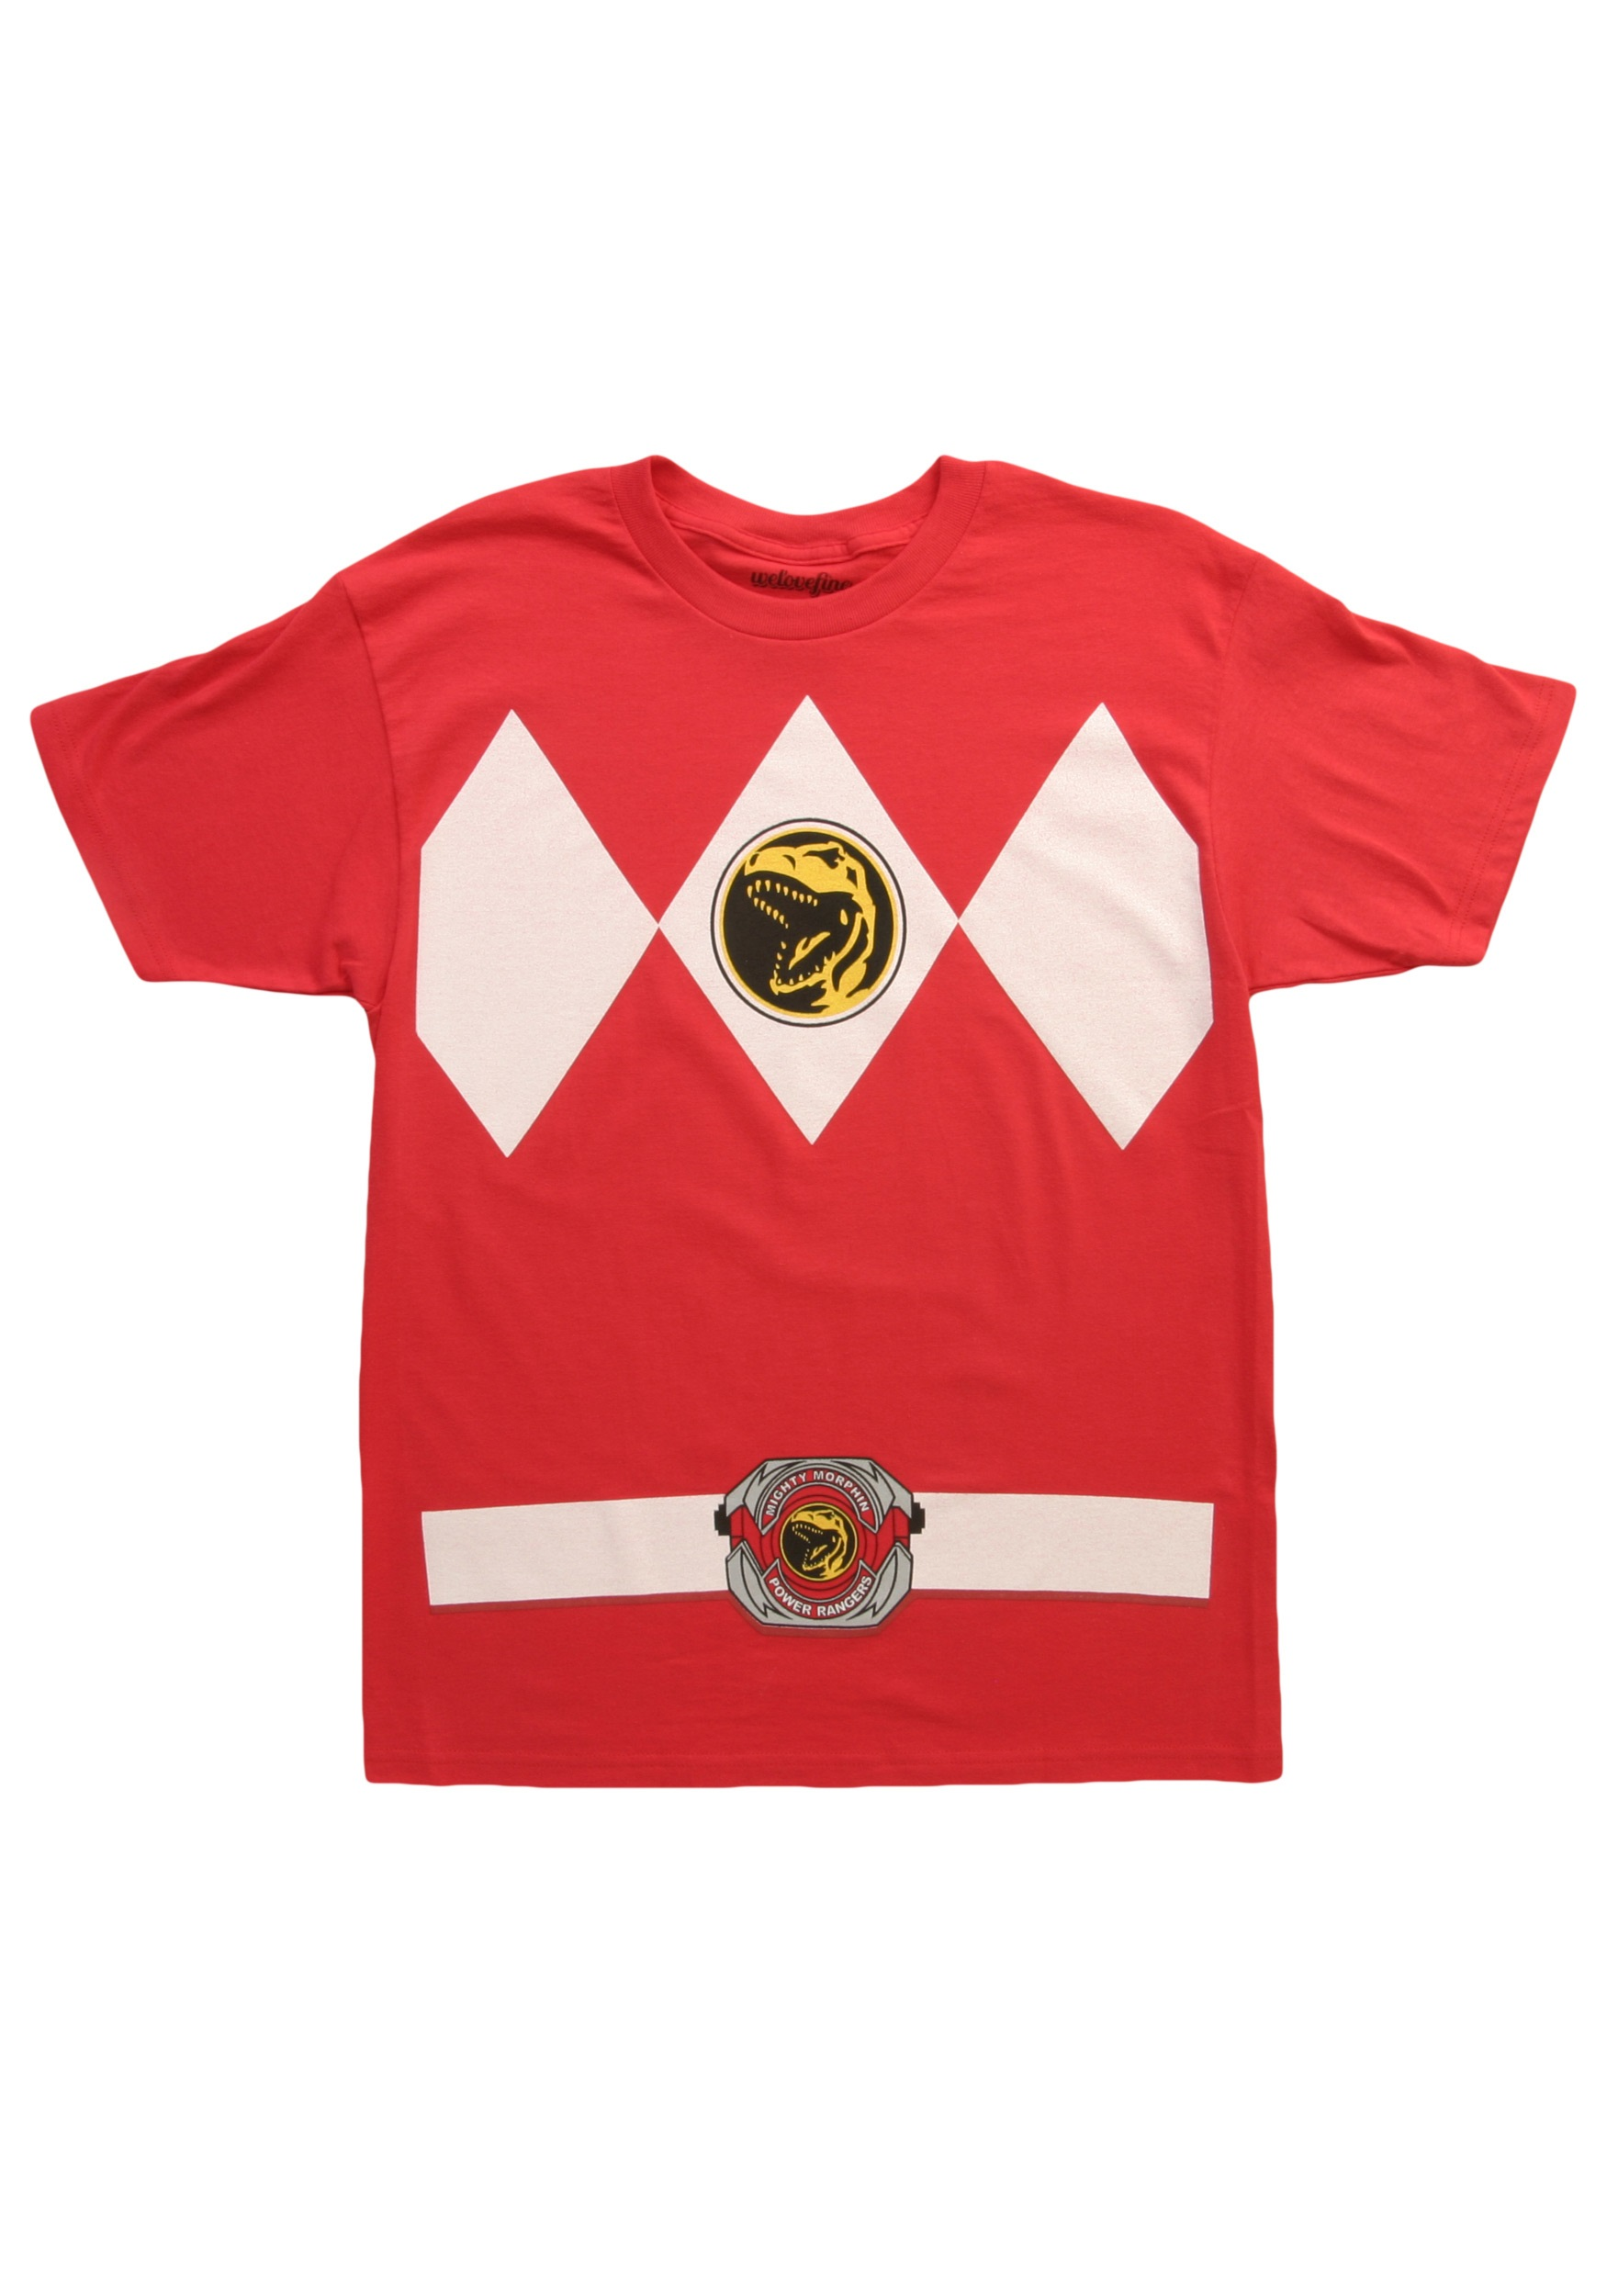 Red power ranger costume t shirt for Costume t shirts online